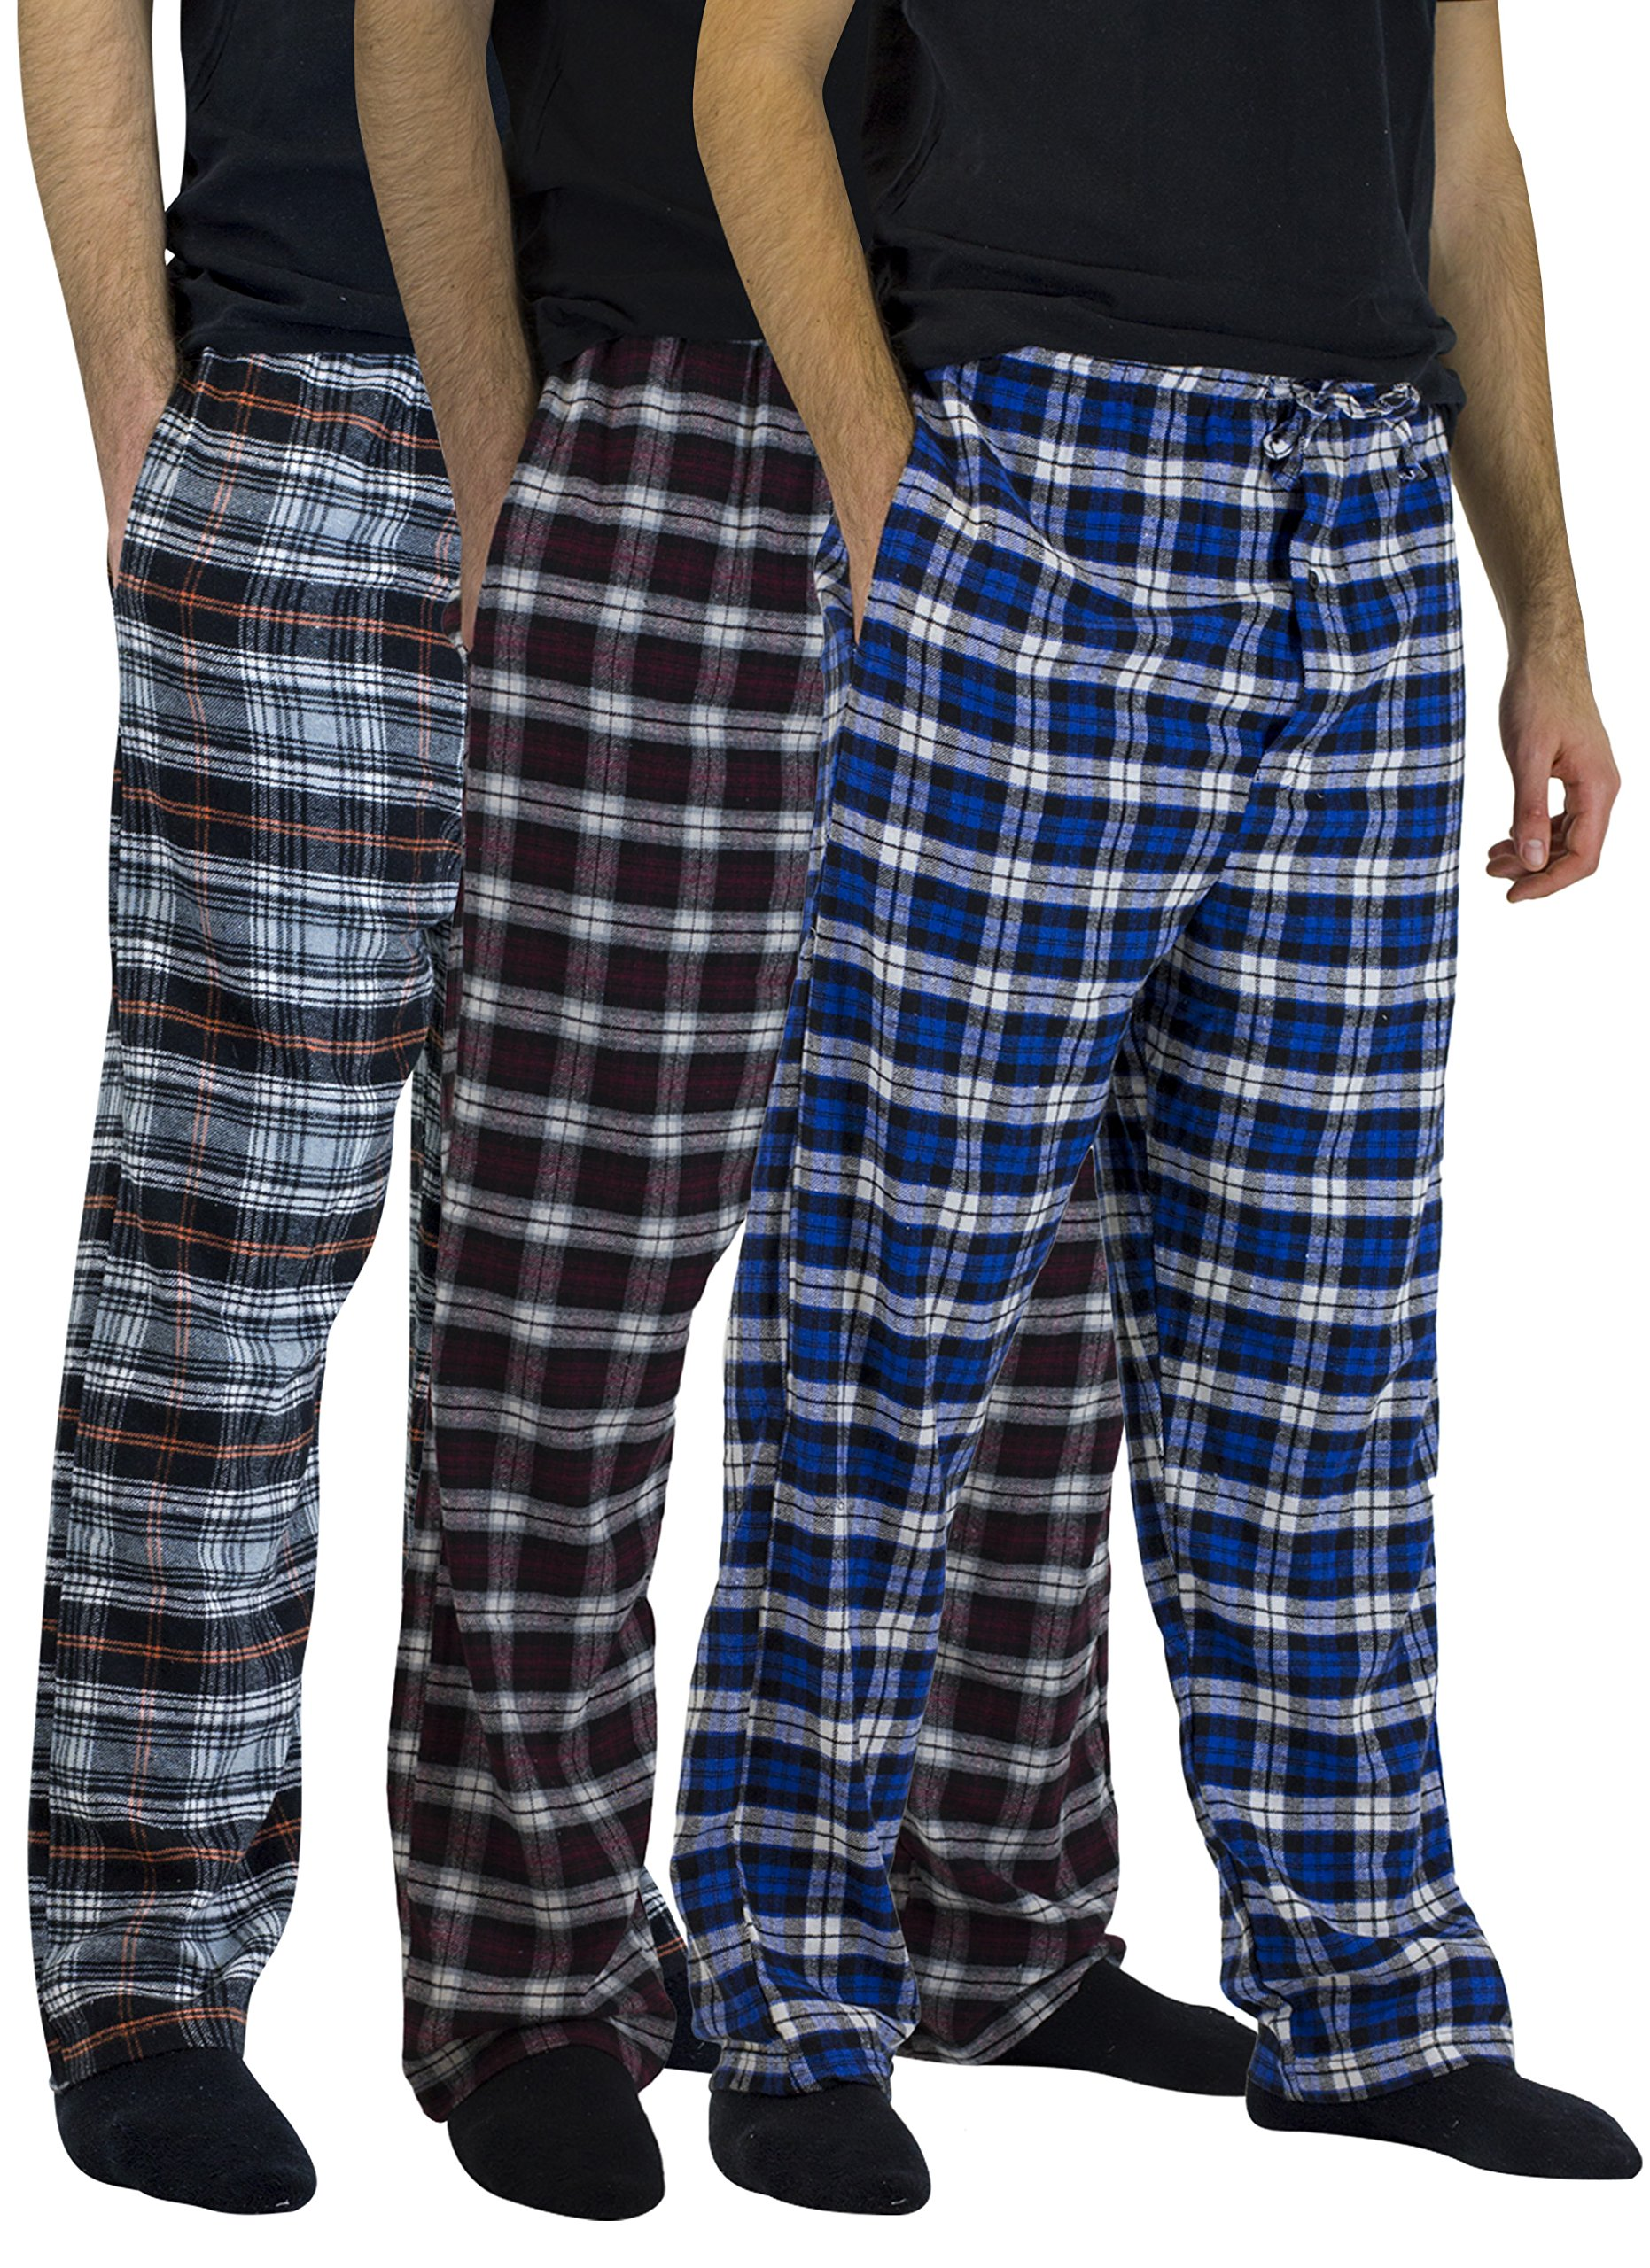 Real Essentials 3 Pack:Men's Cotton Super Soft Flannel Plaid Pajama Pants/Lounge Bottoms,Set 6-L by Real Essentials